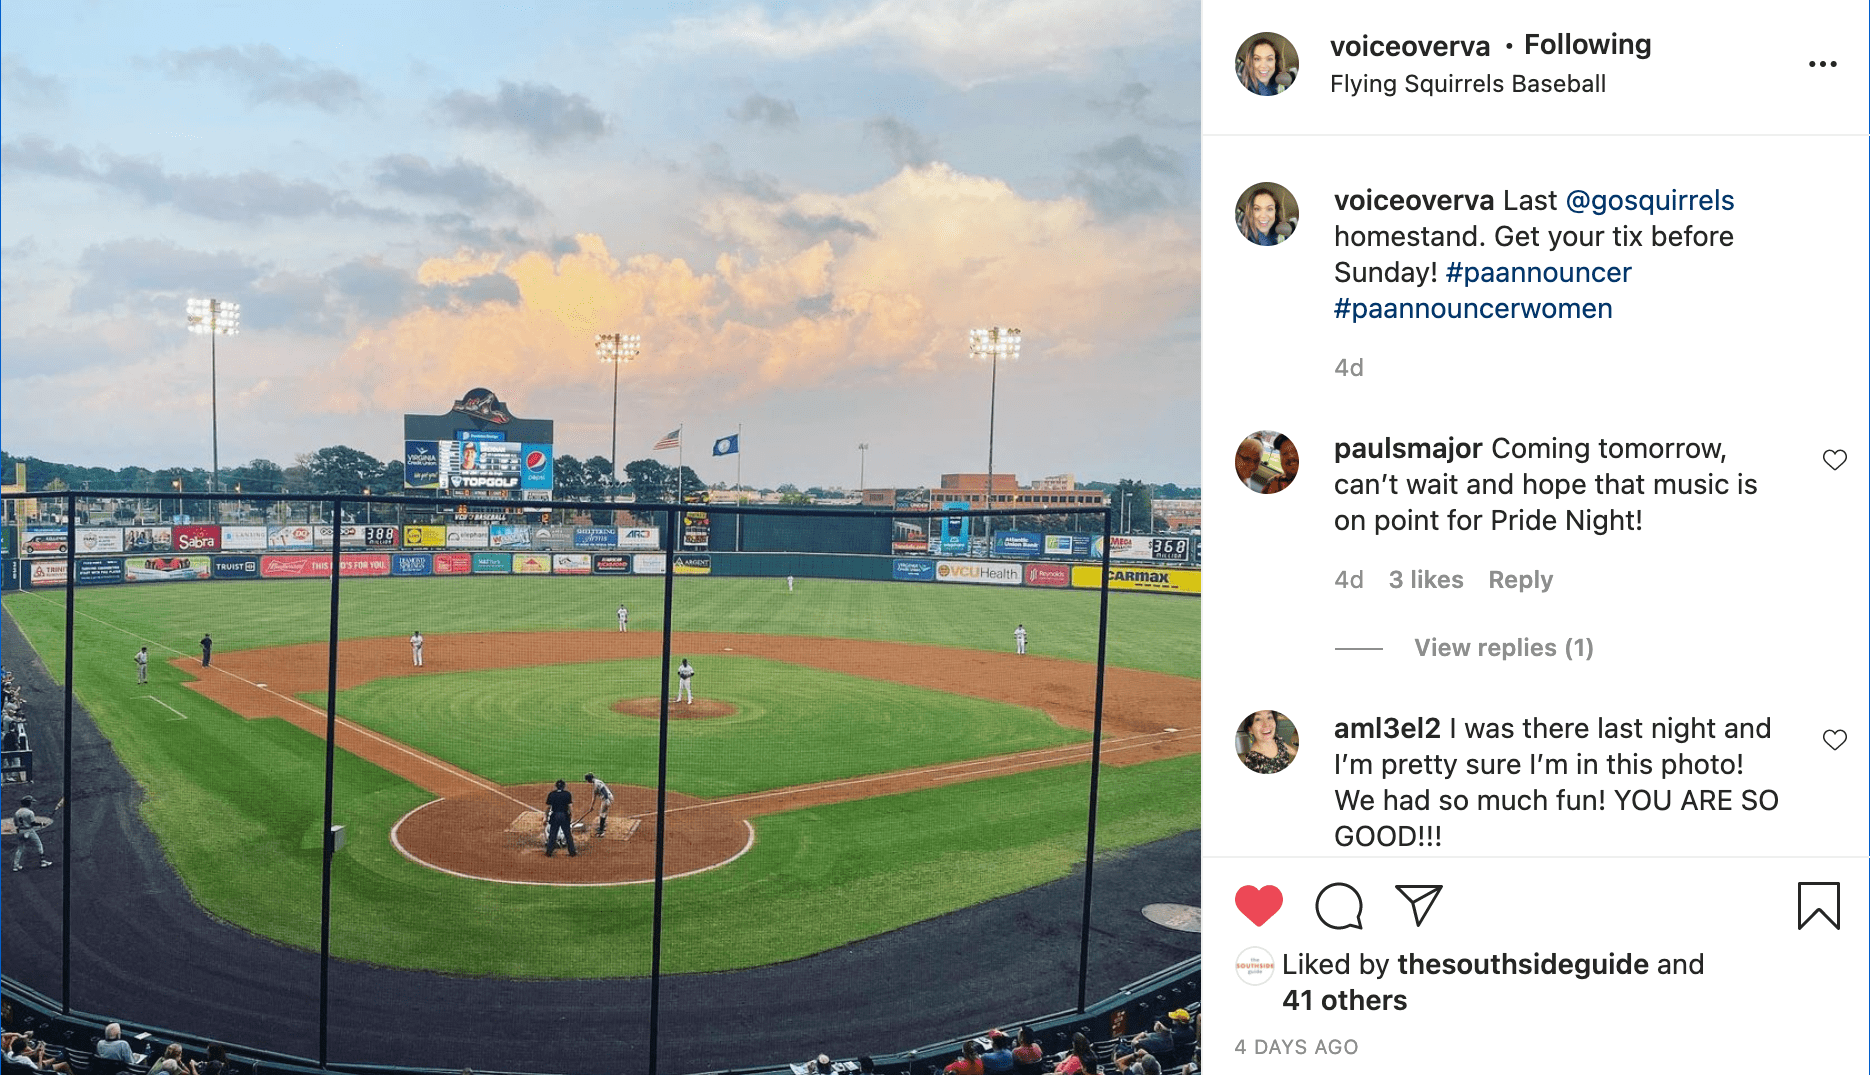 An instagram post of the Diamond, the home of the Richmond Flying Squirrels